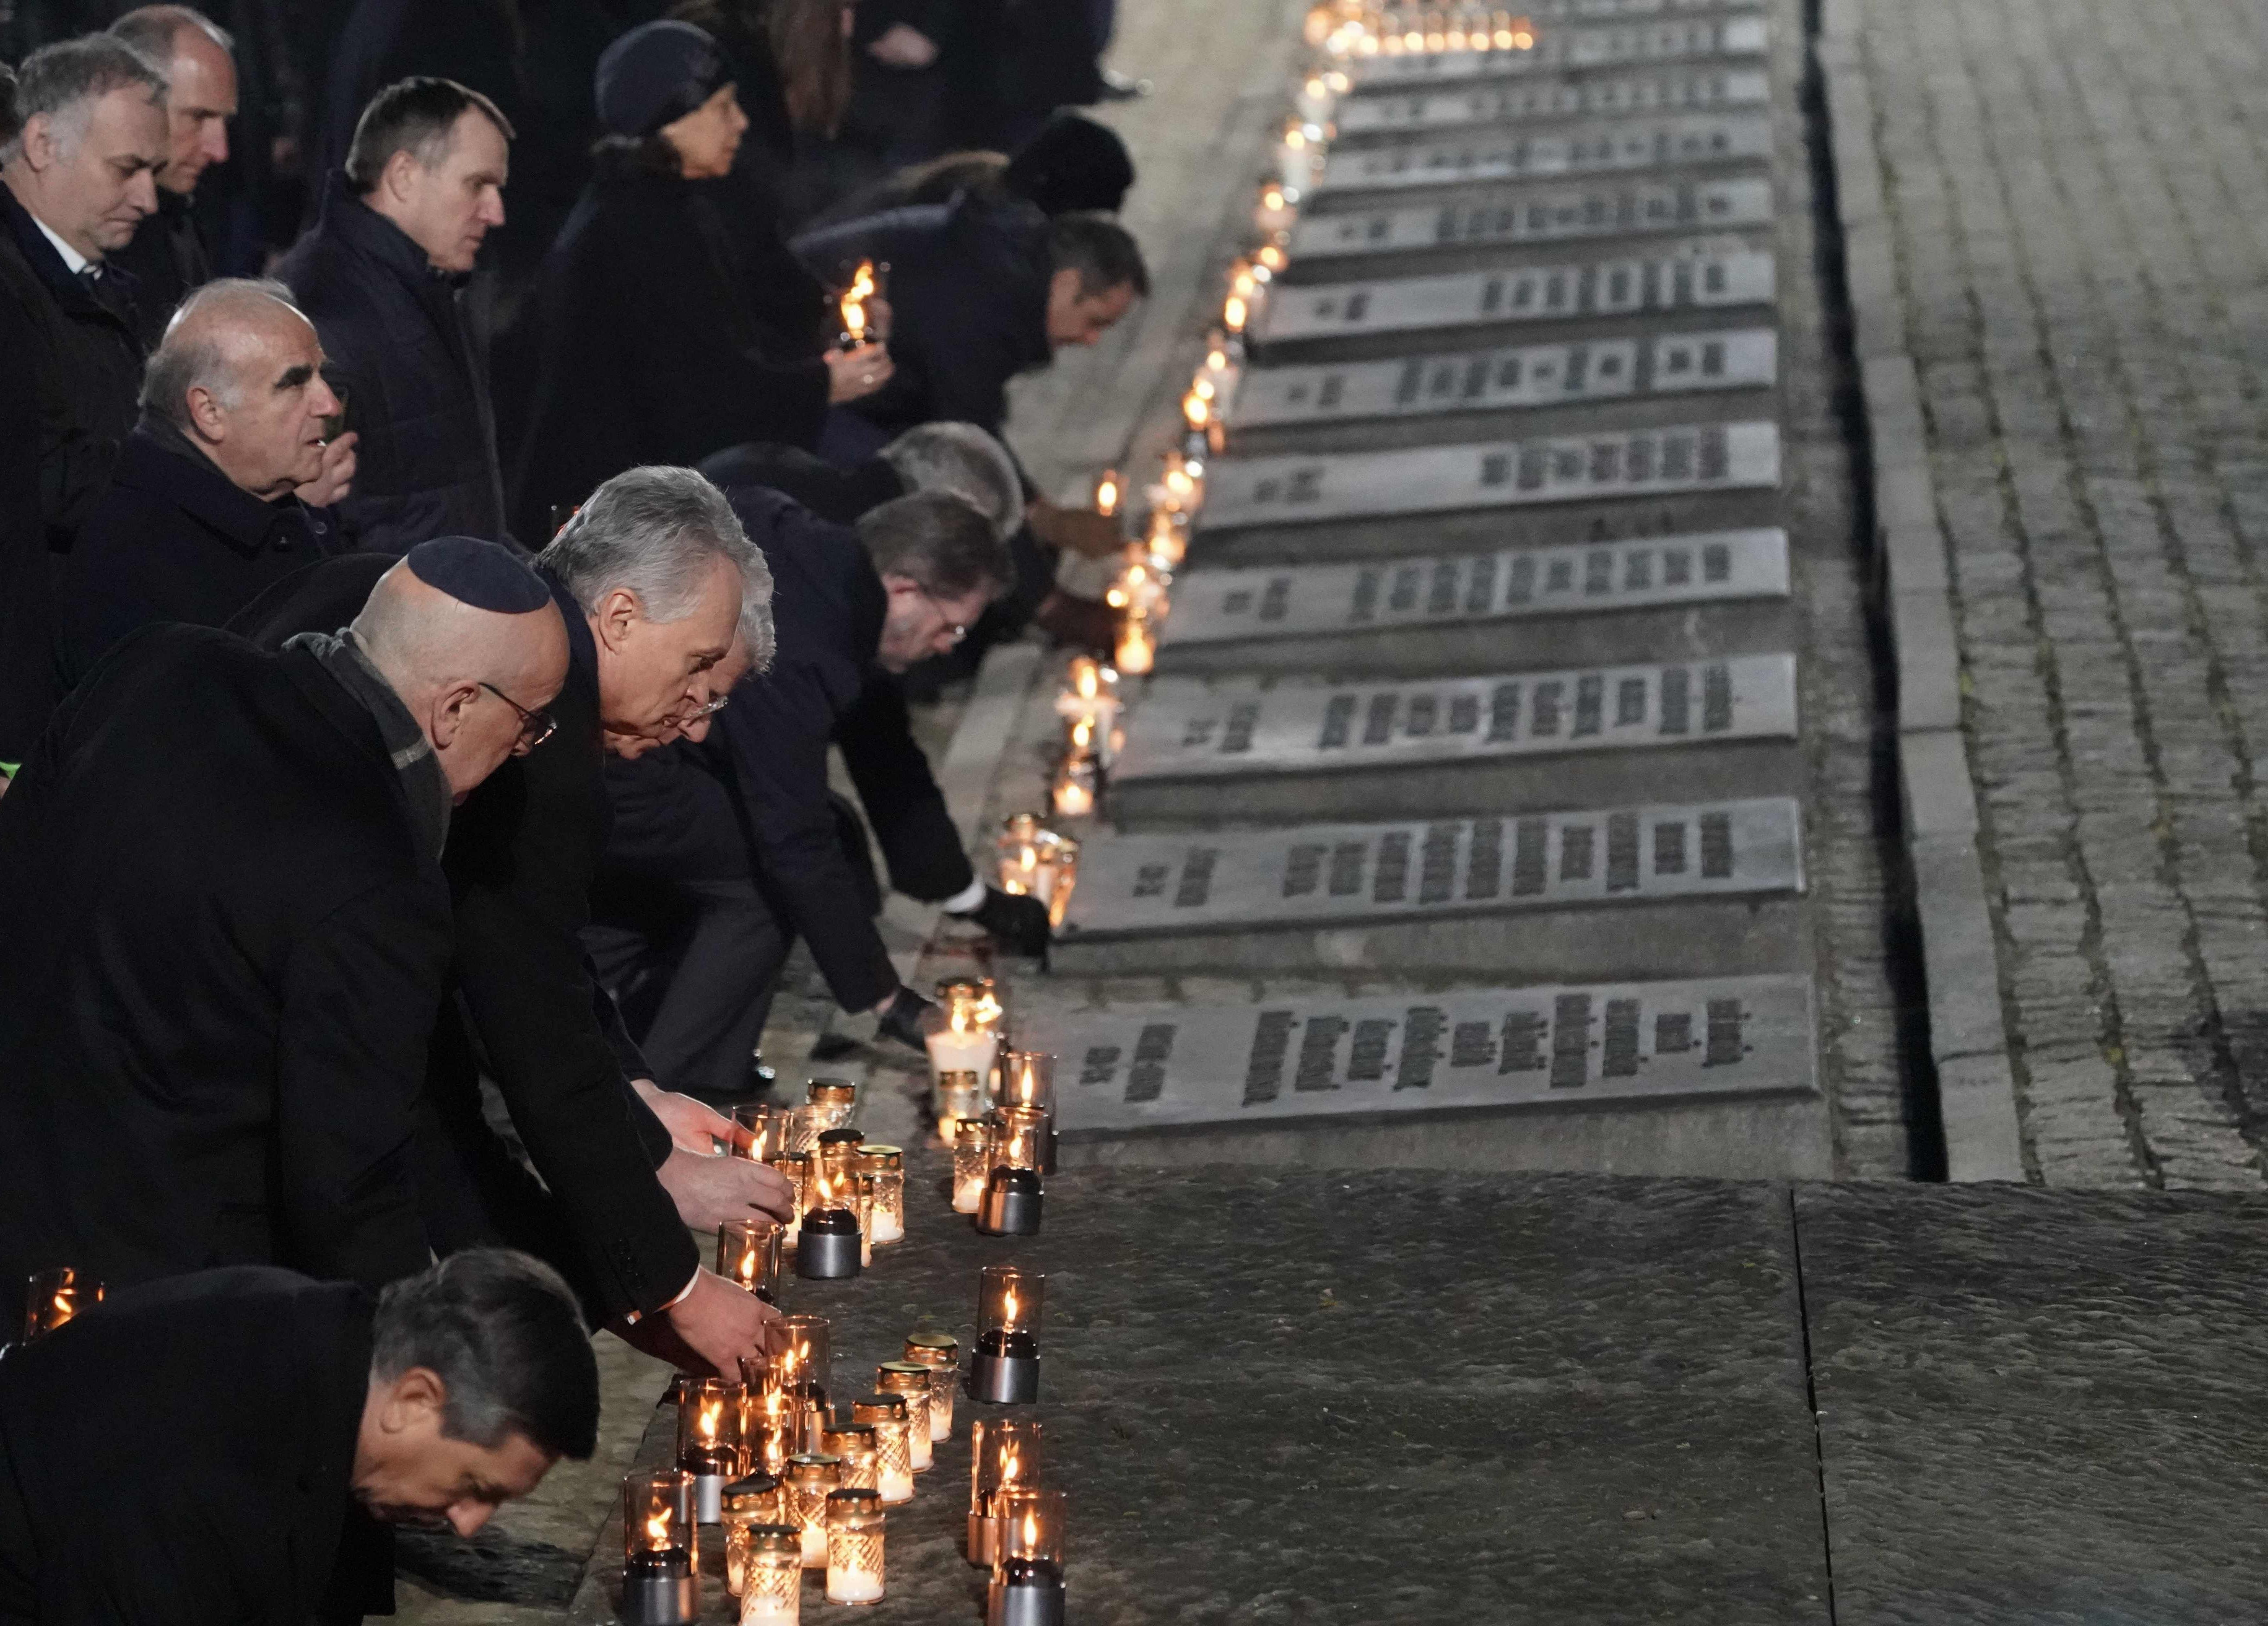 'Do not be indifferent': Auschwitz survivors call for world to stay vigilant